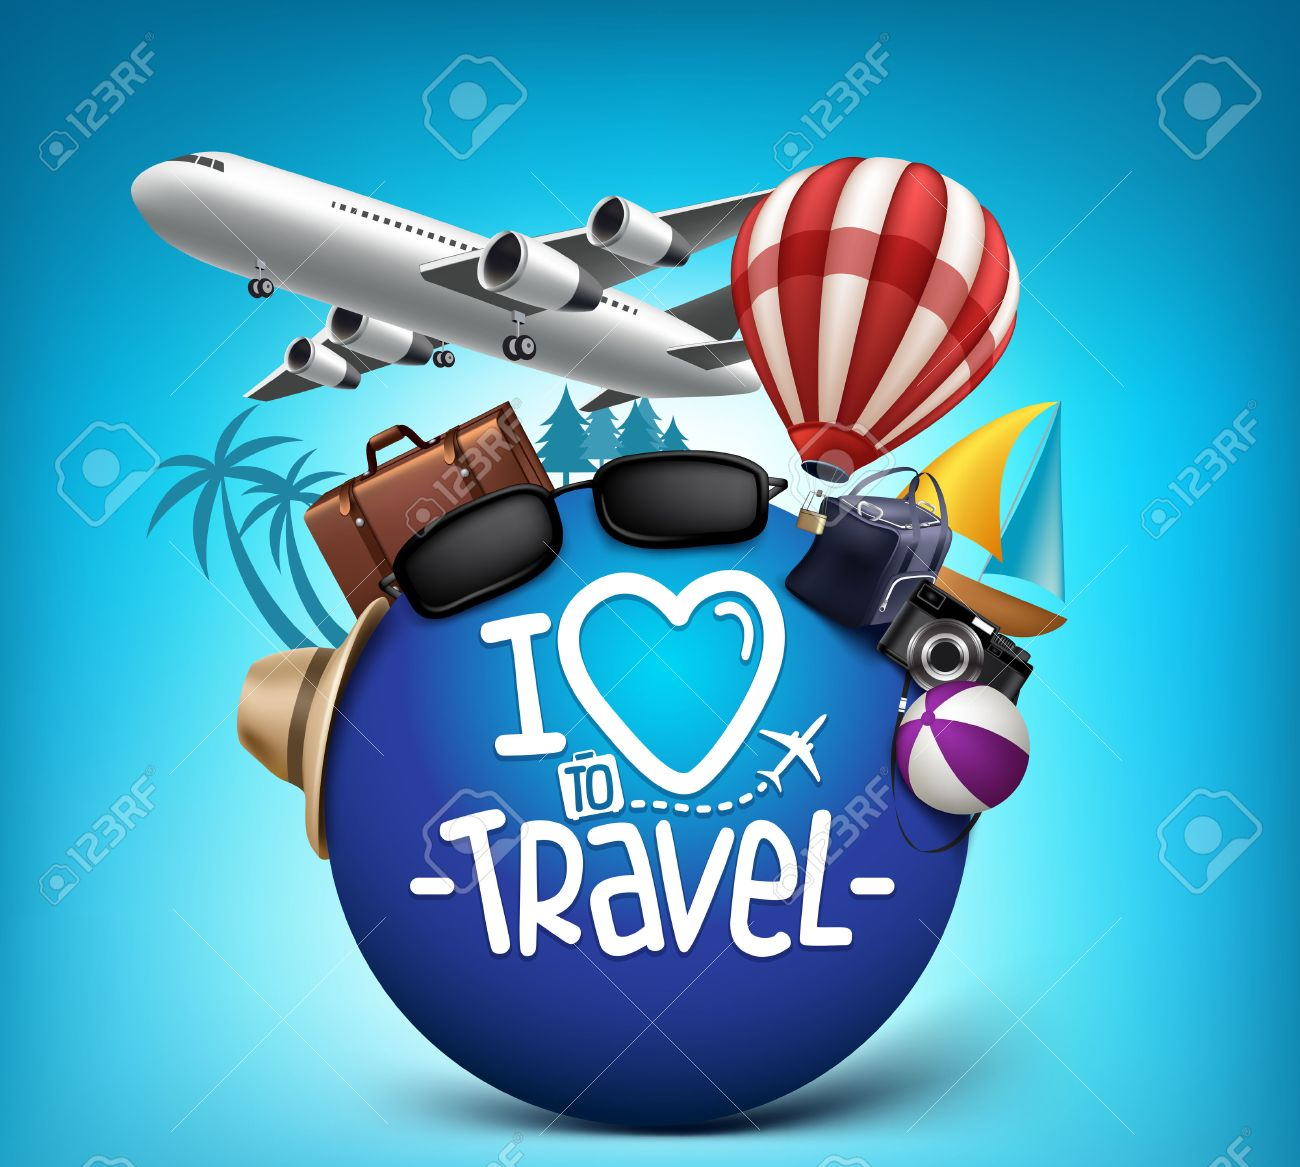 Poster design 3d - 3d Realistic Travel And Tour Poster Design Around The World With Summer Elements Vector Illustration